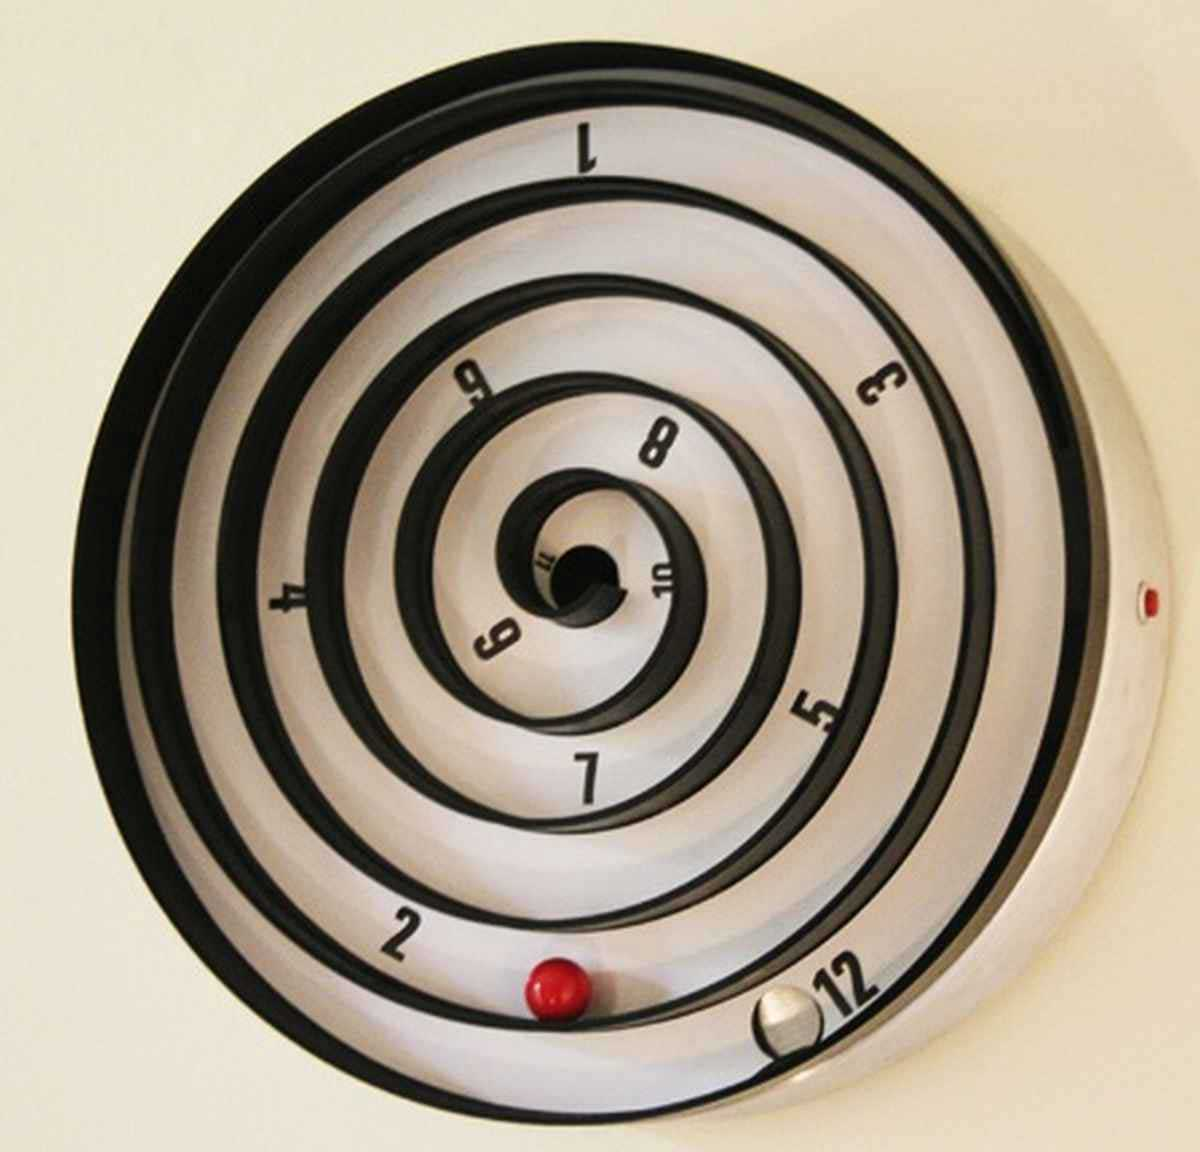 Cool Wall Clocks Pouted Online Magazine Latest Design